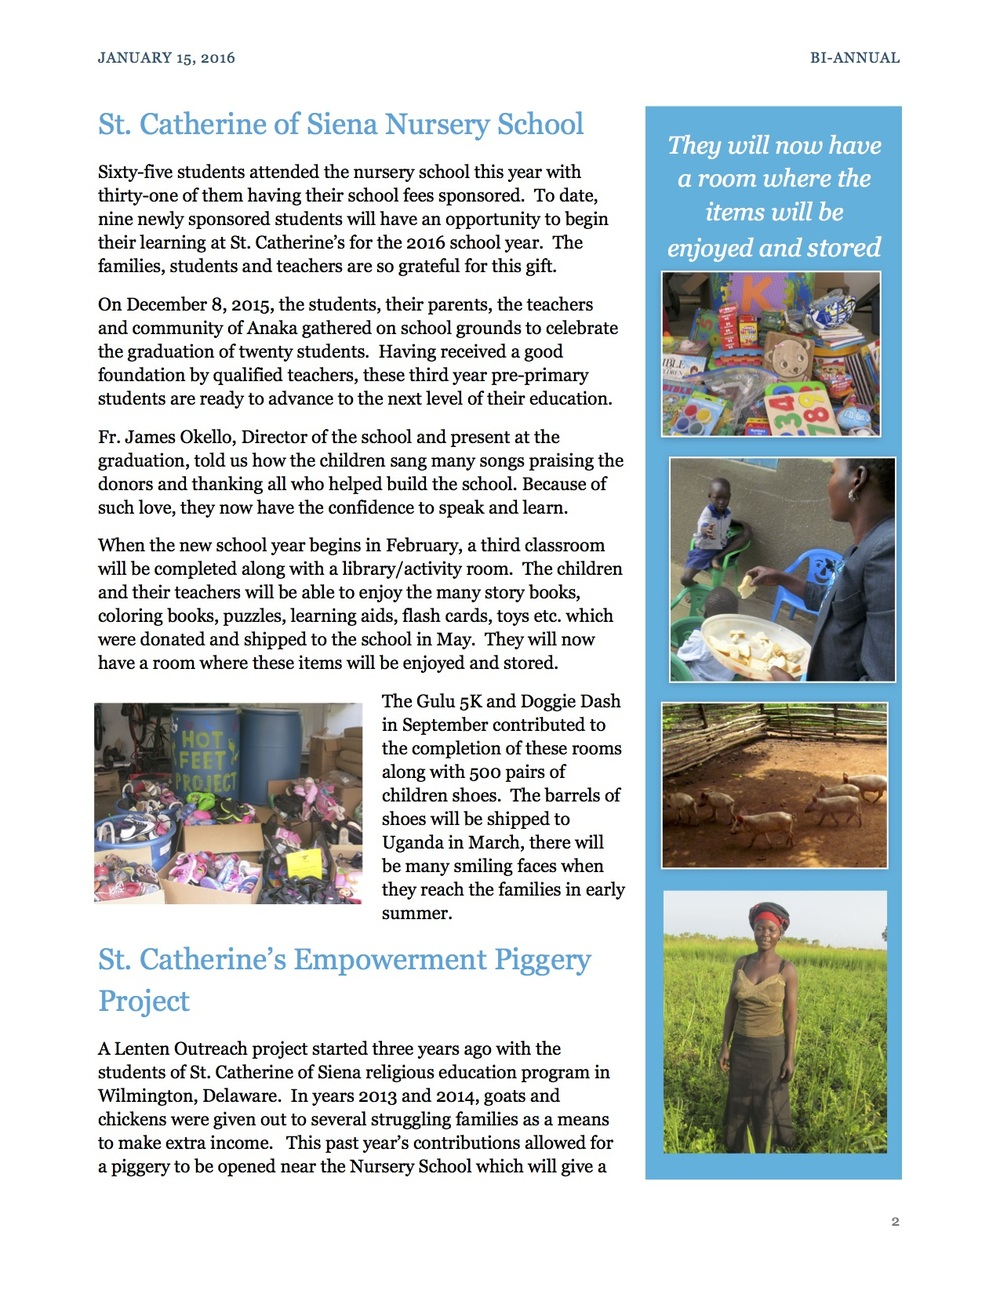 2016 Gulu News Letter. 2pages.jpg